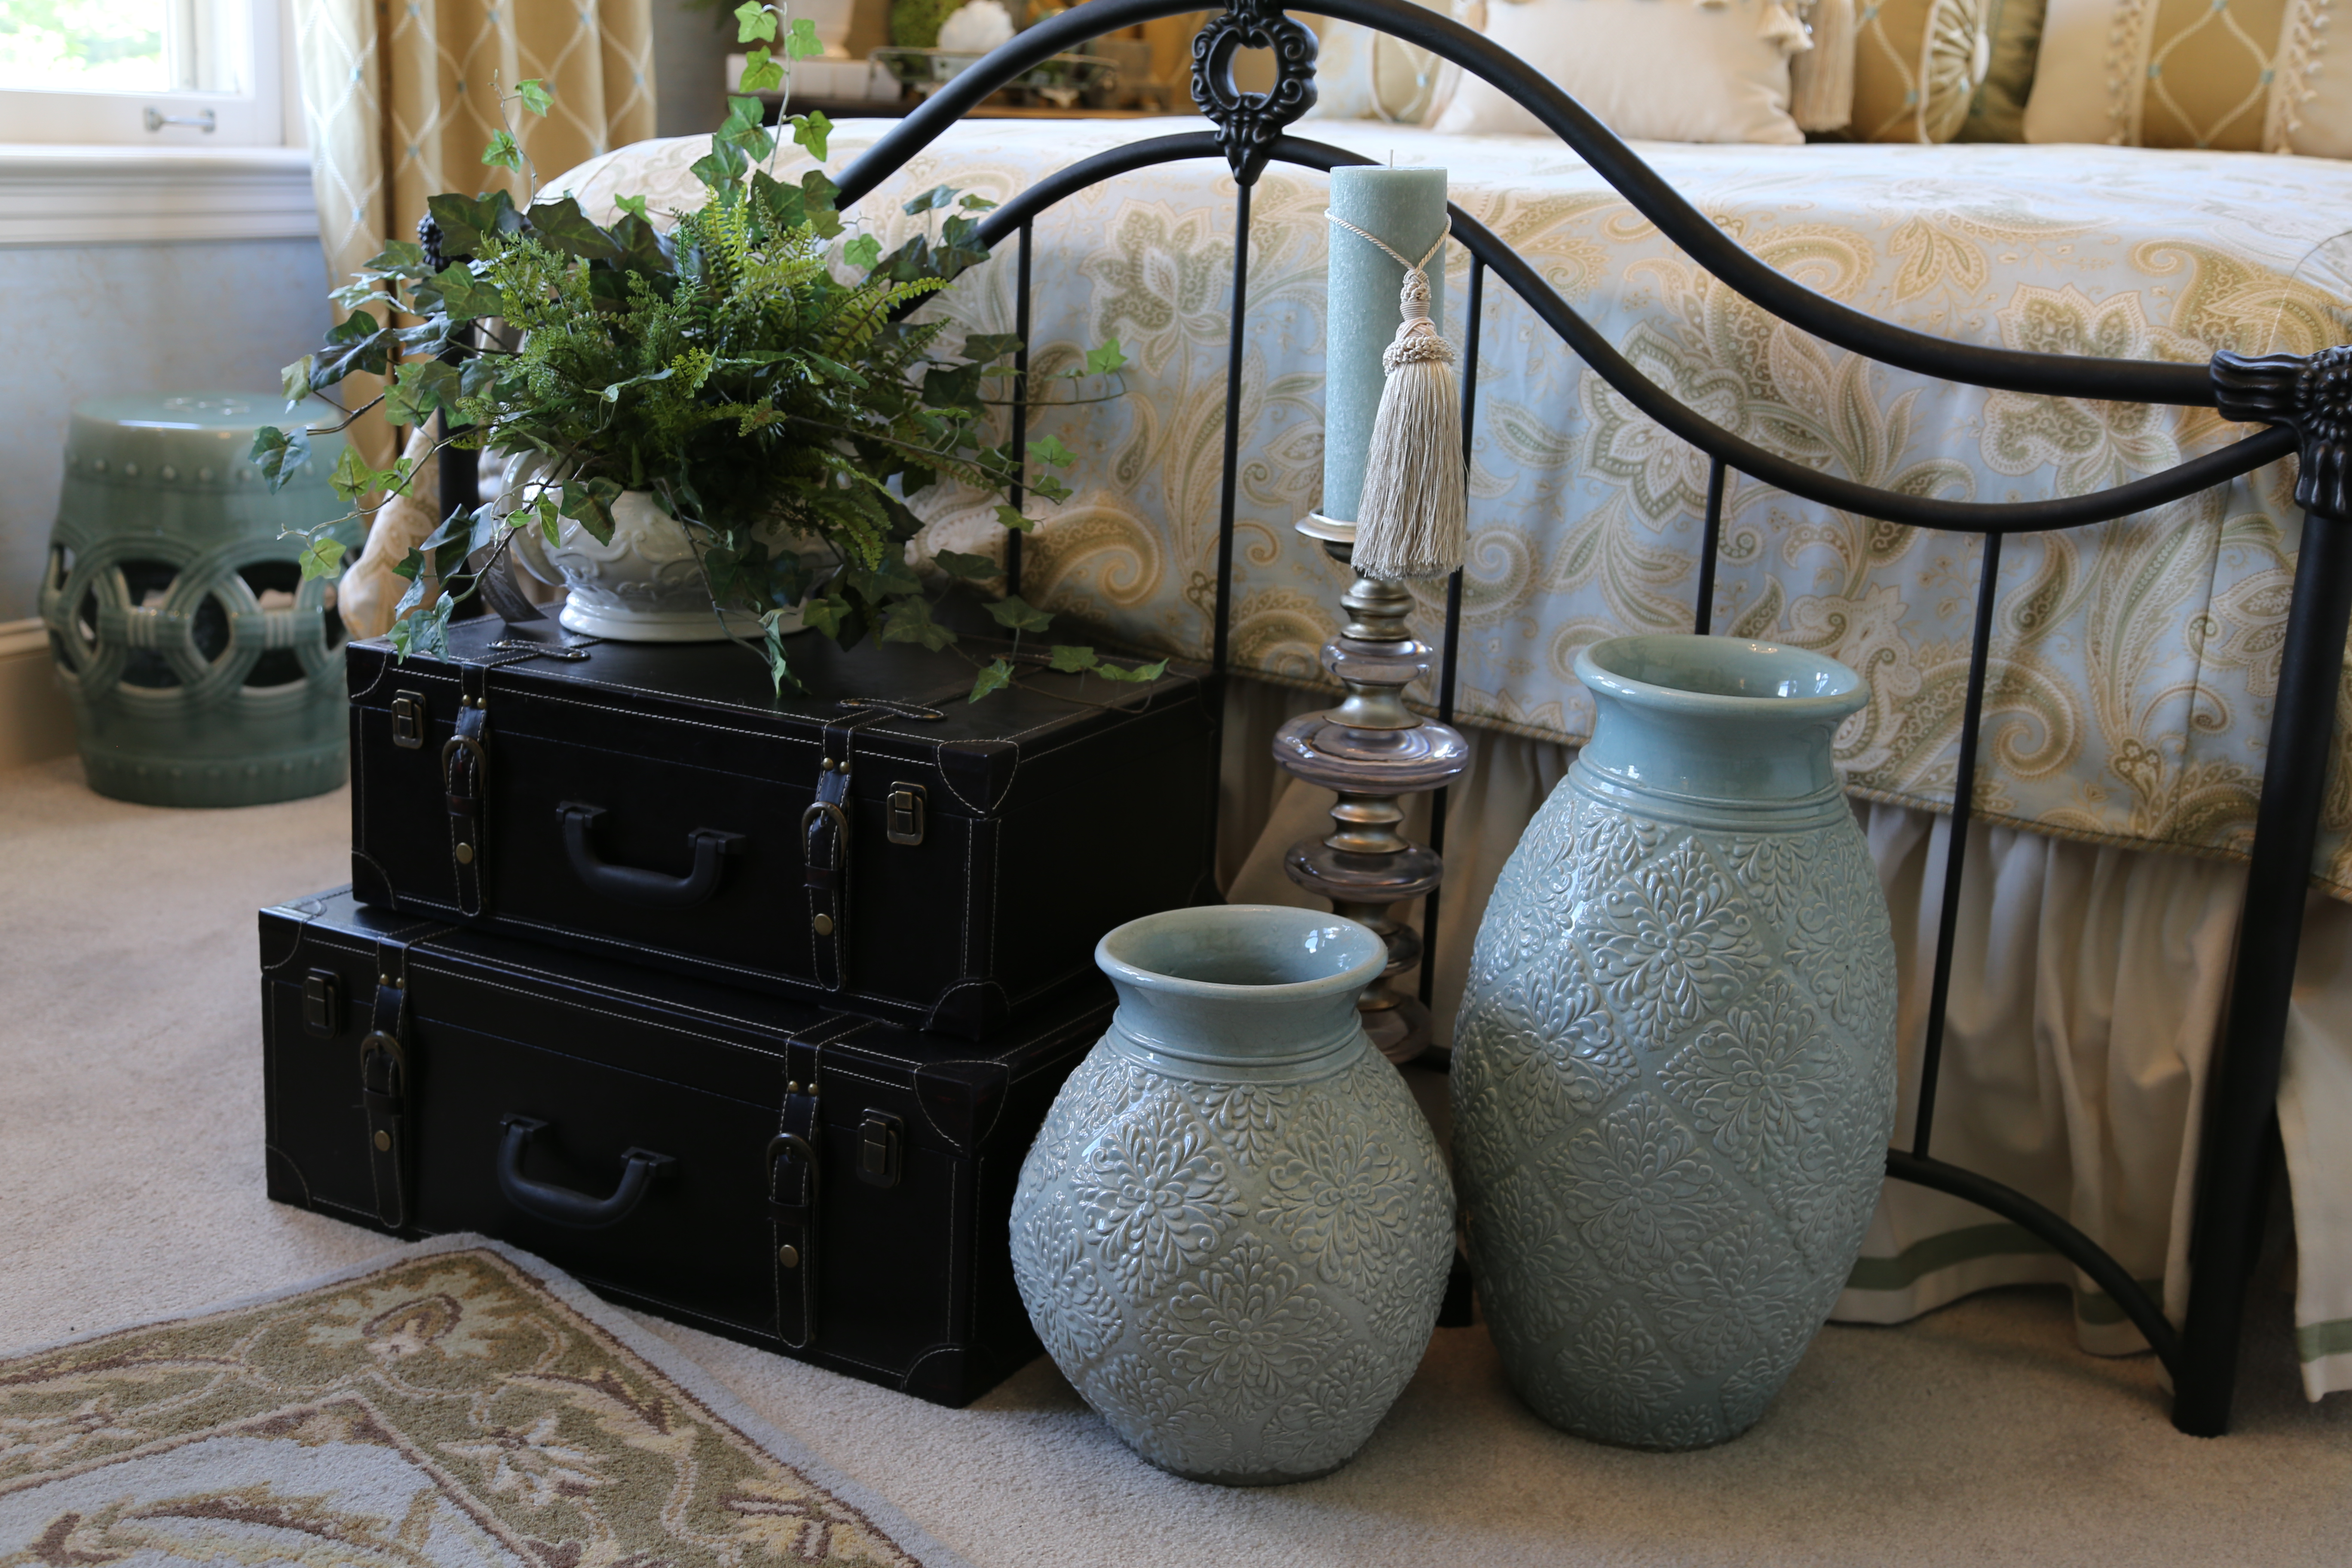 Captivating Home Decor U0026 Finishing Touches For Your Home U0026 Workplace   Heritage Design  Interiors, Inc   House U0026 Home Magazine